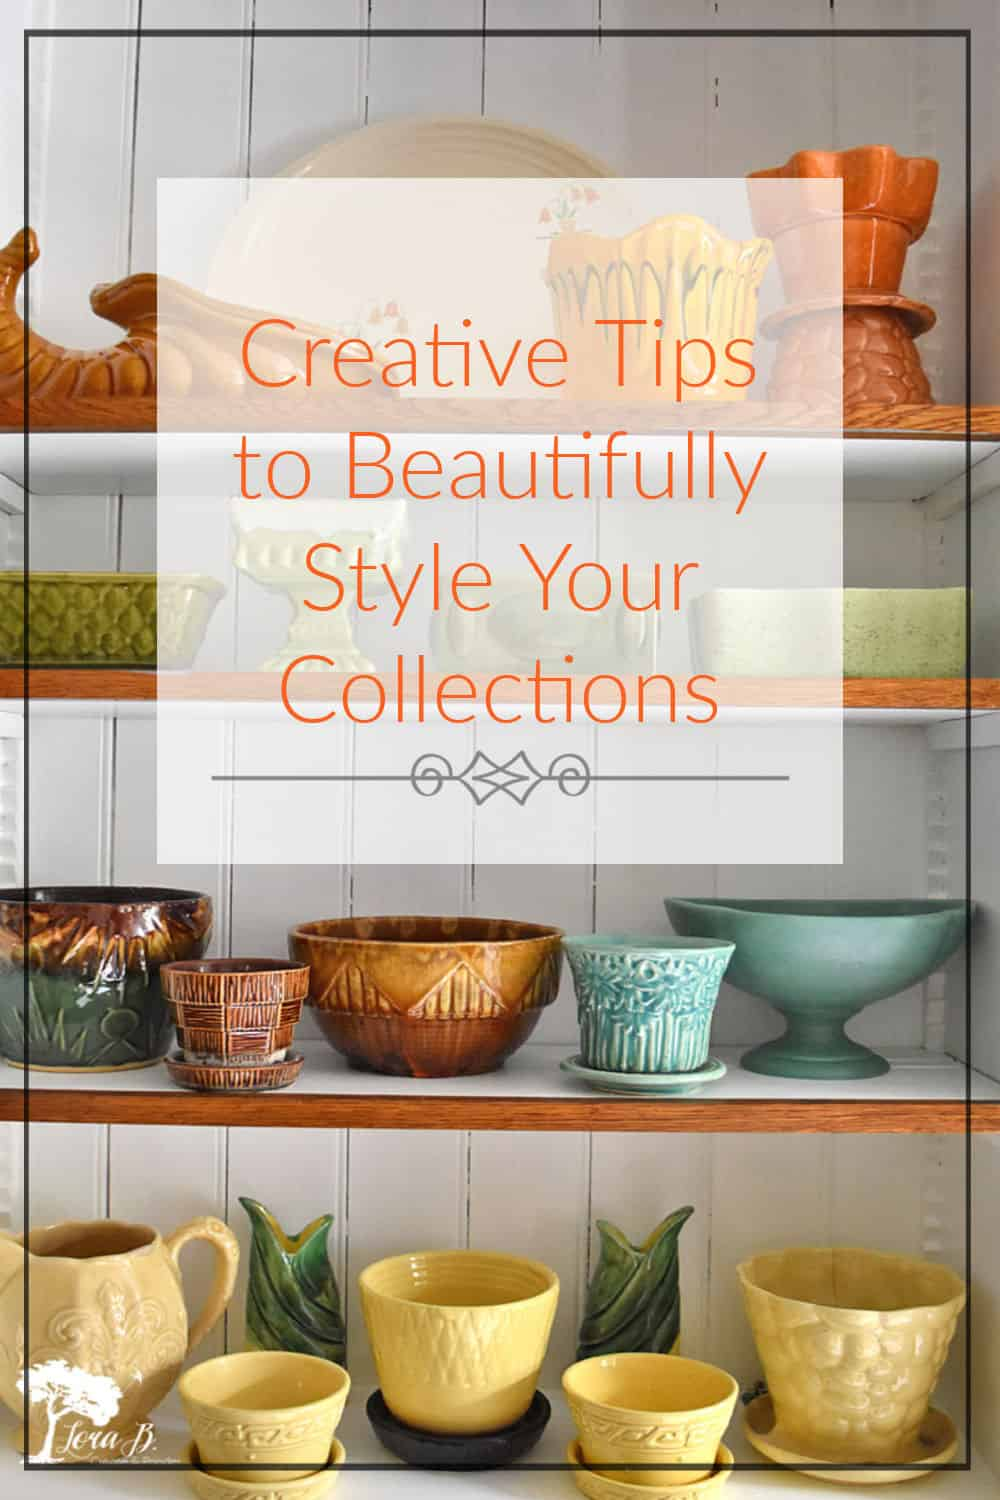 Creative Ways to Display Your Collections with Style